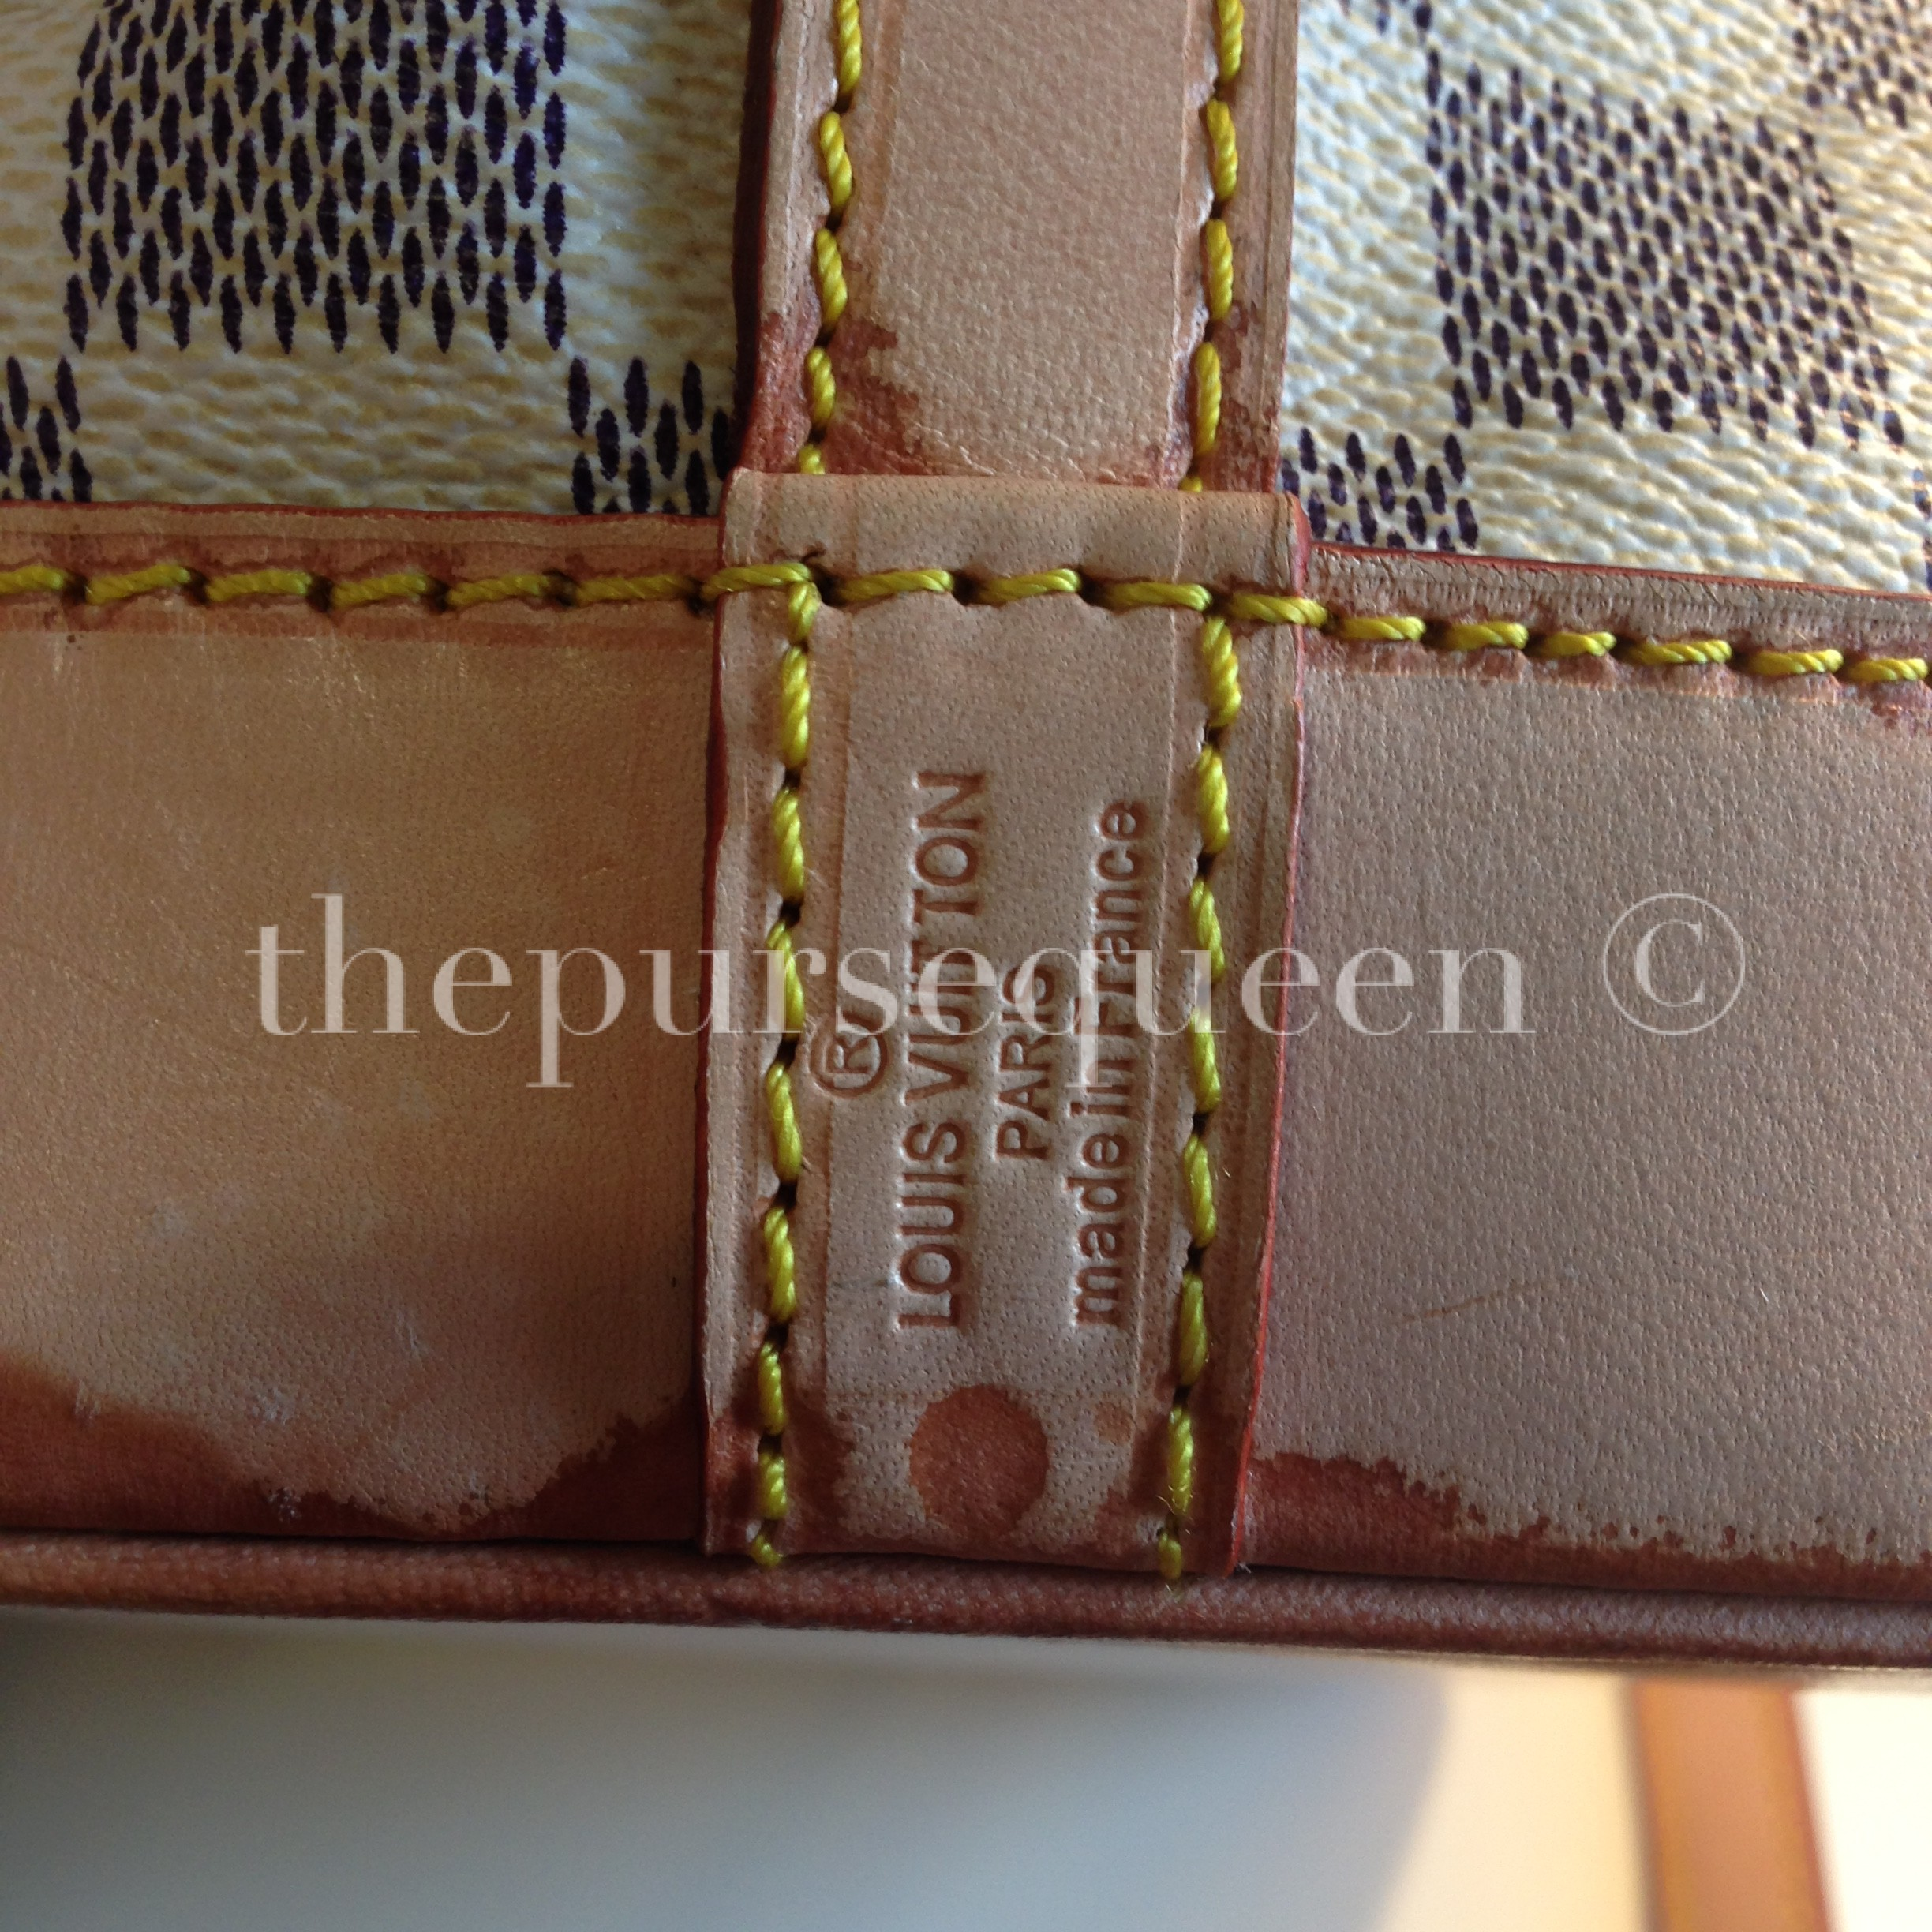 fake louis vuitton Archives - Page 5 of 6 - Authentic   Replica ... 0a6657eb24